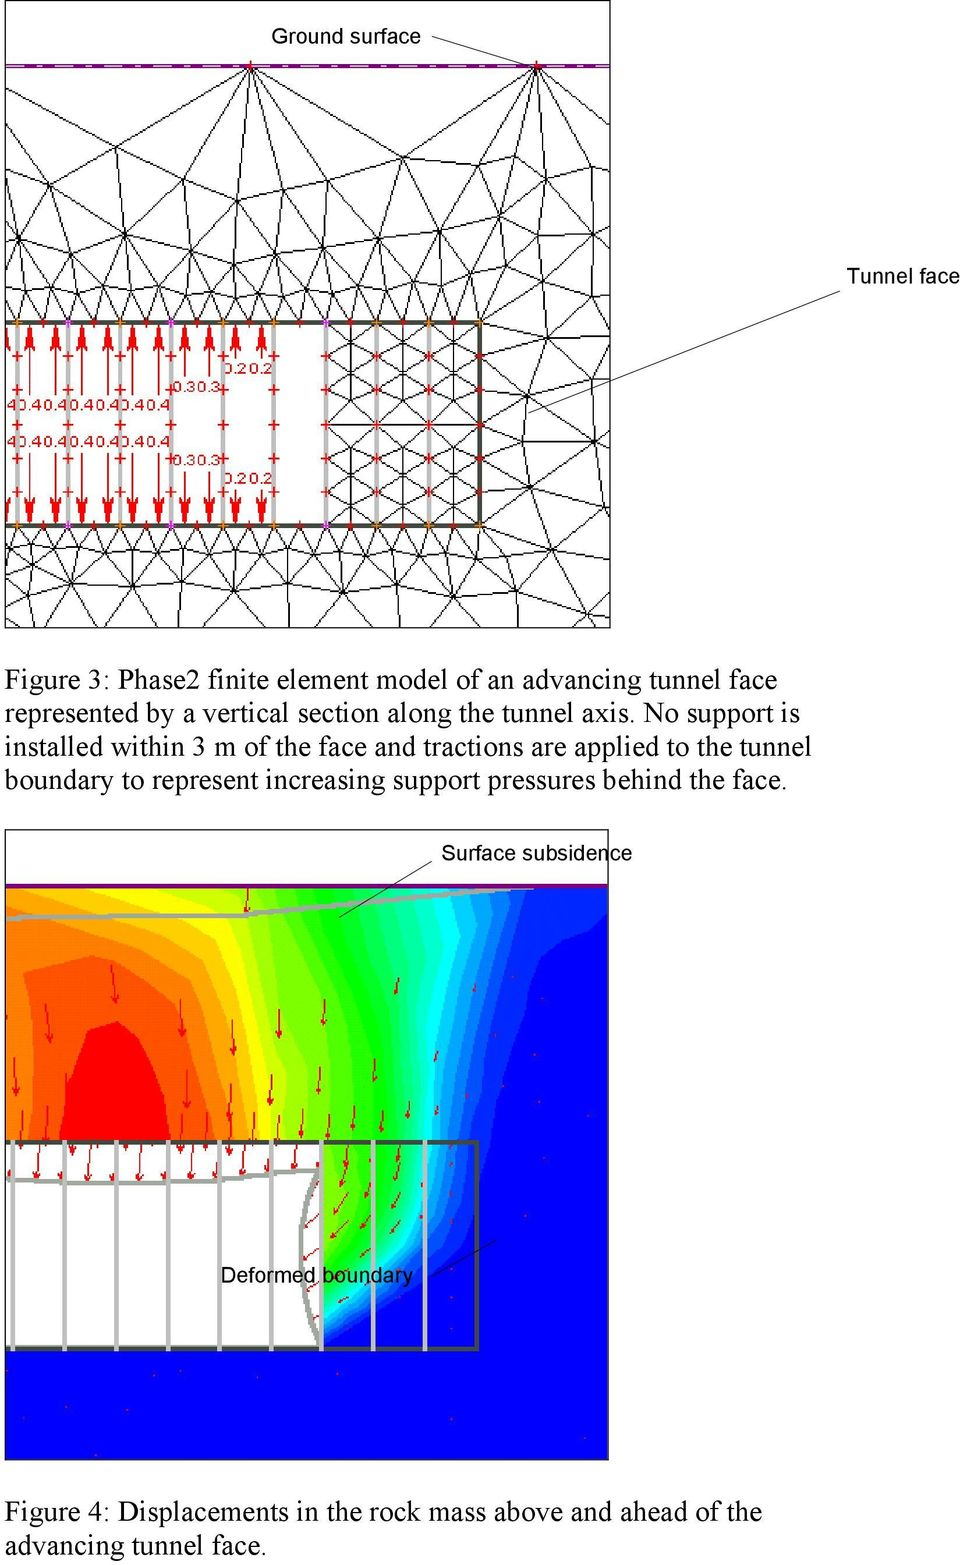 No support is installed within 3 m of the face and tractions are applied to the tunnel boundary to